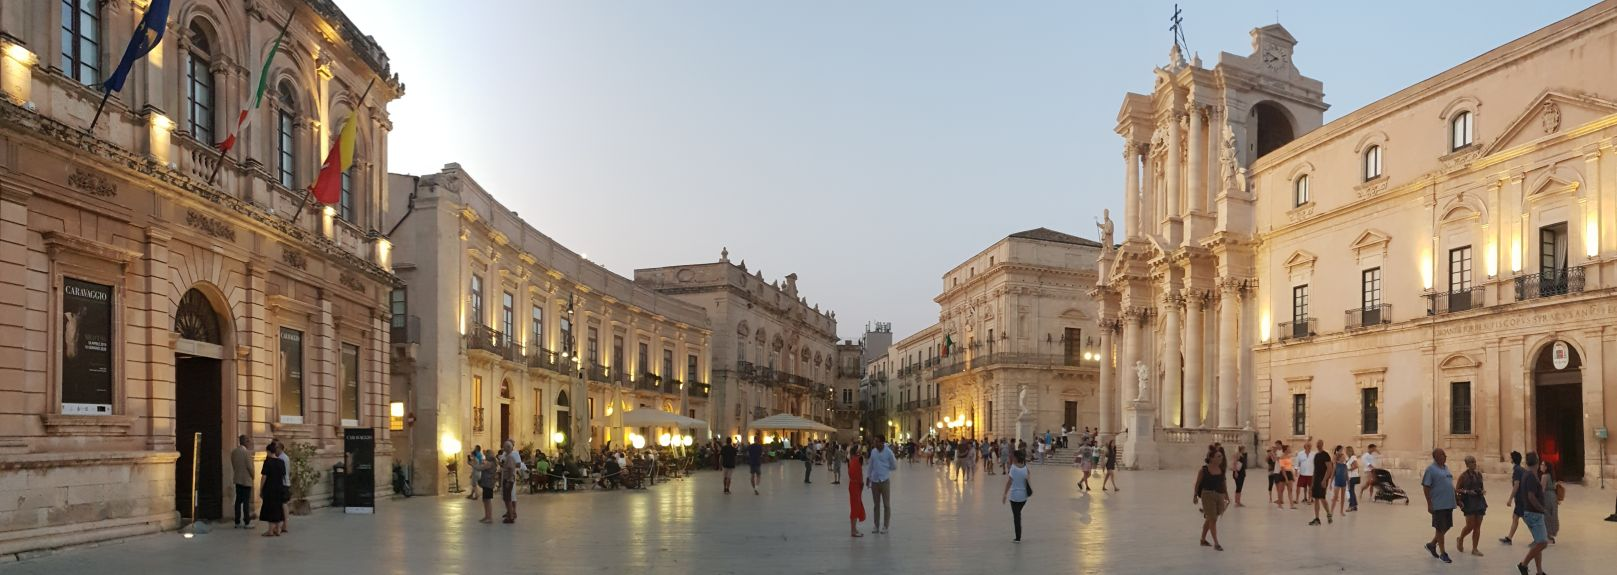 sicily ancestry tours - italy family tour - genealogy trips